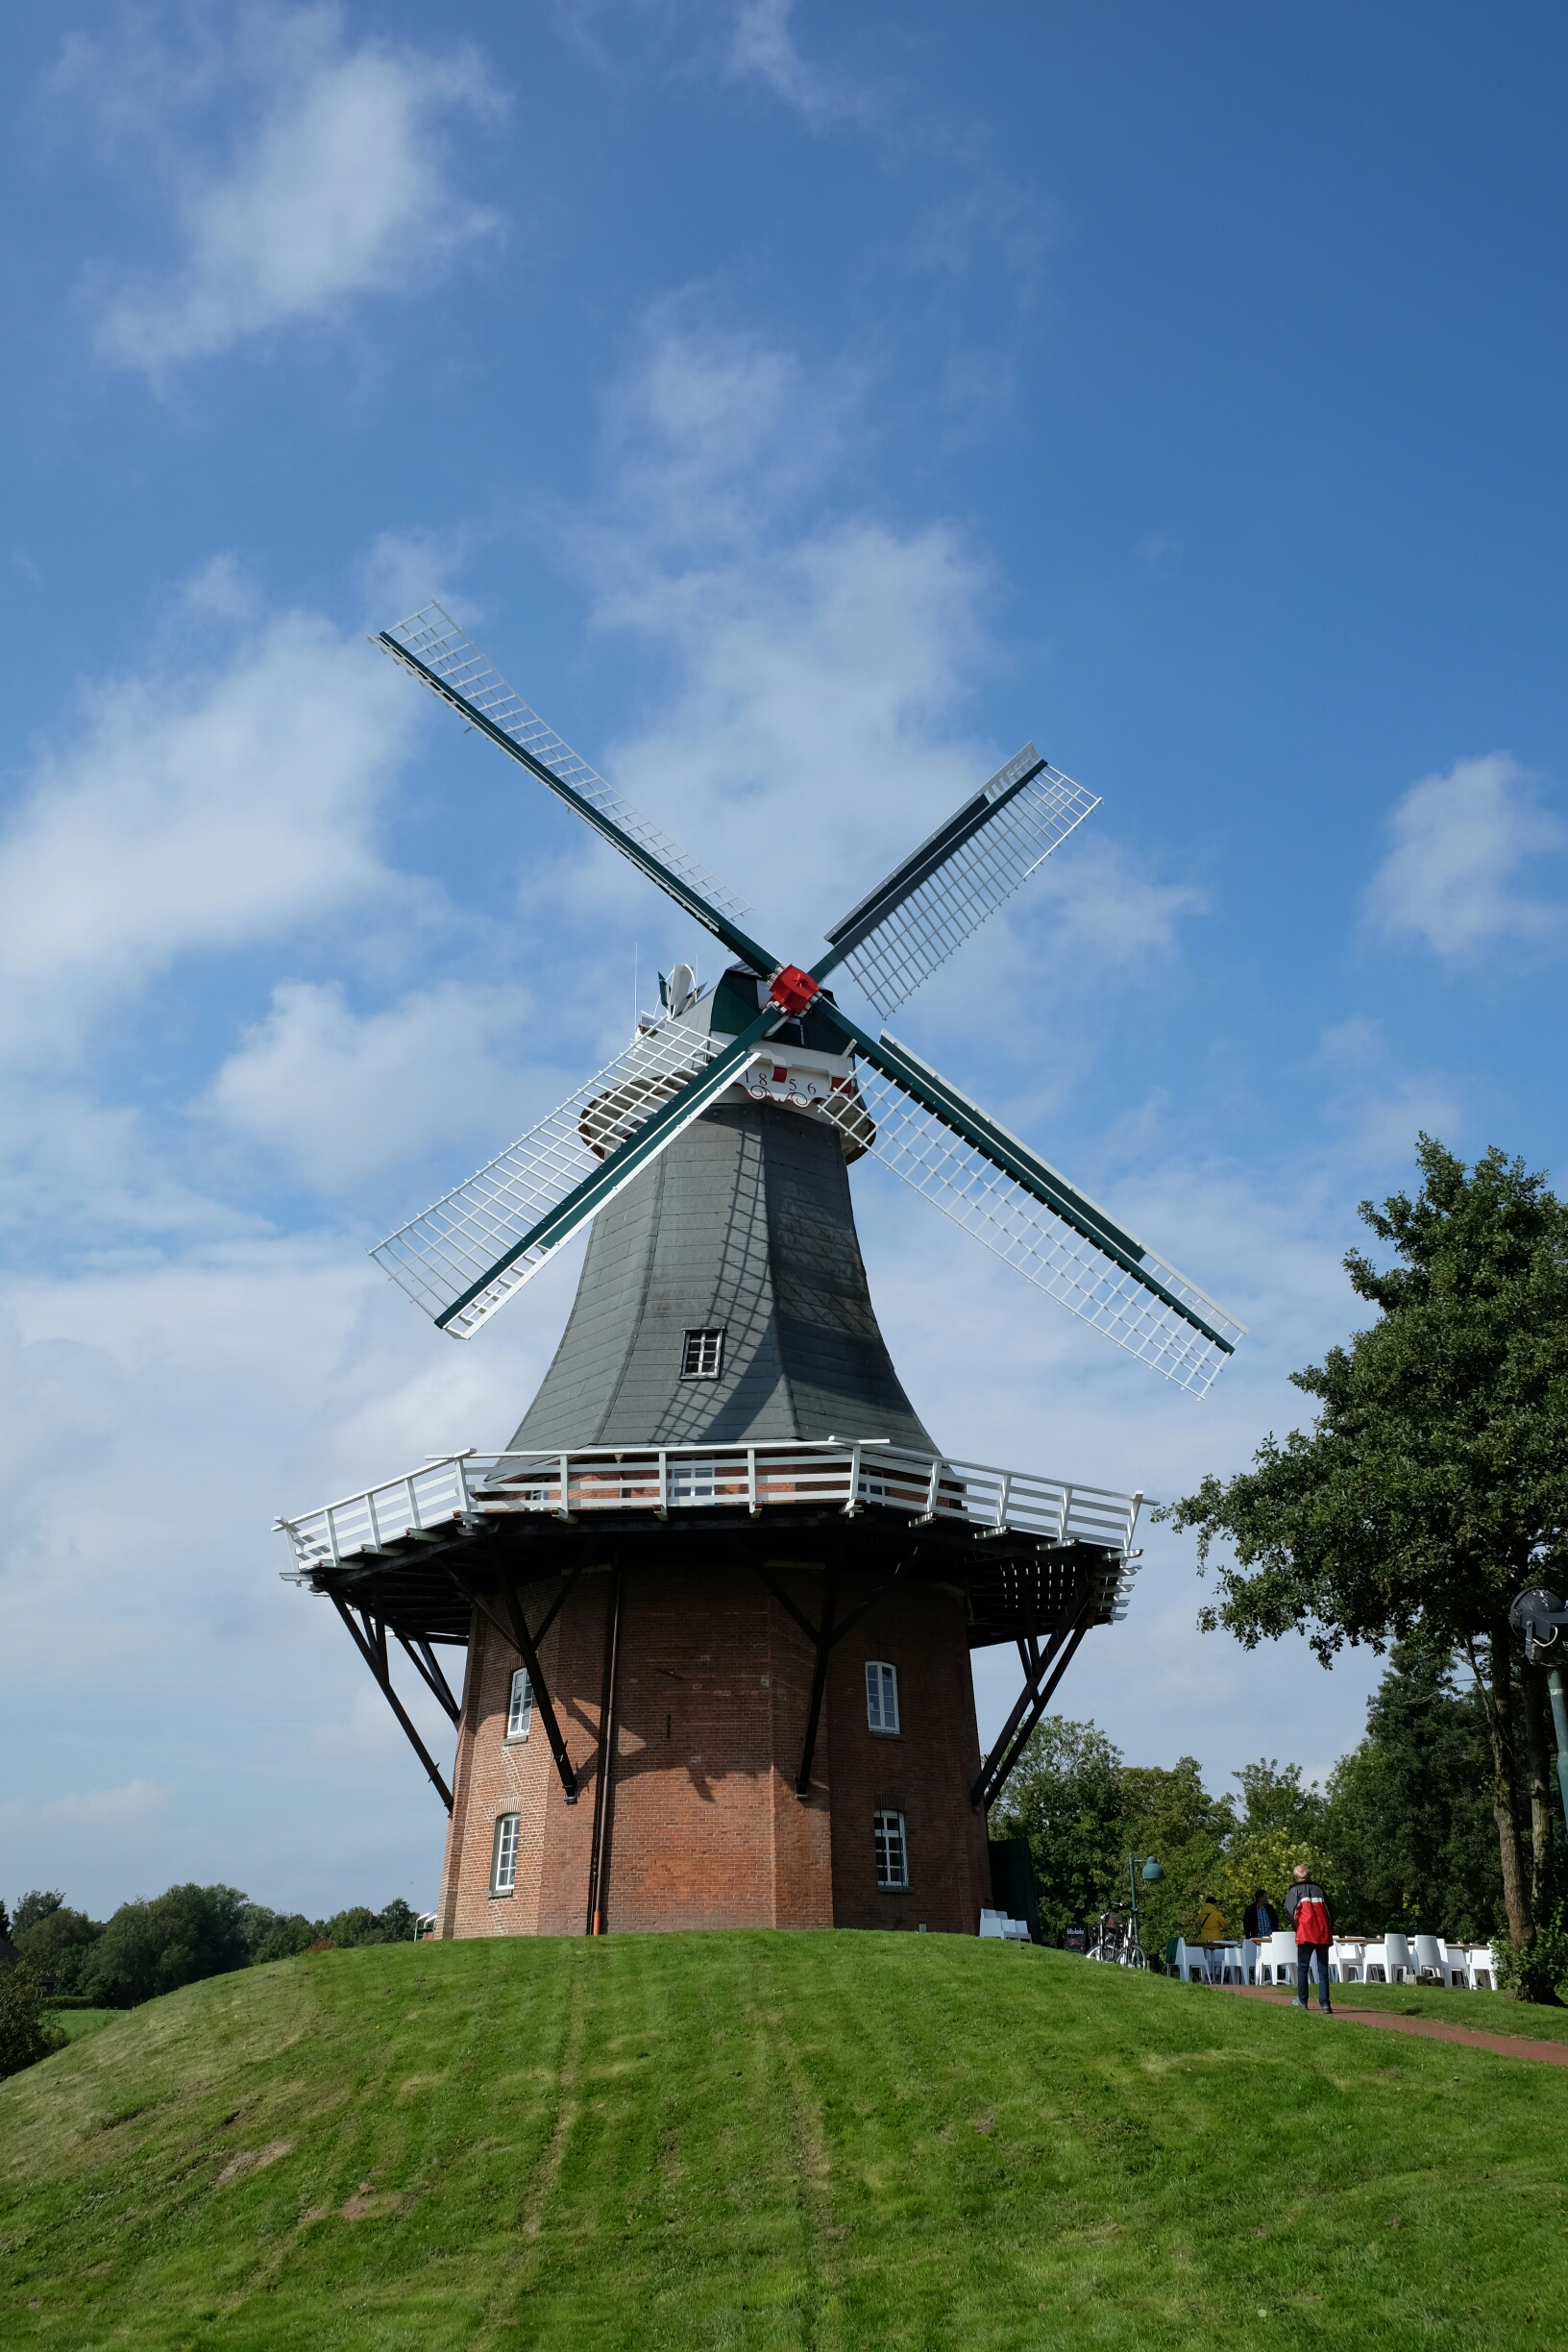 Windmühle in Greetsiel (Gallerieholländer)